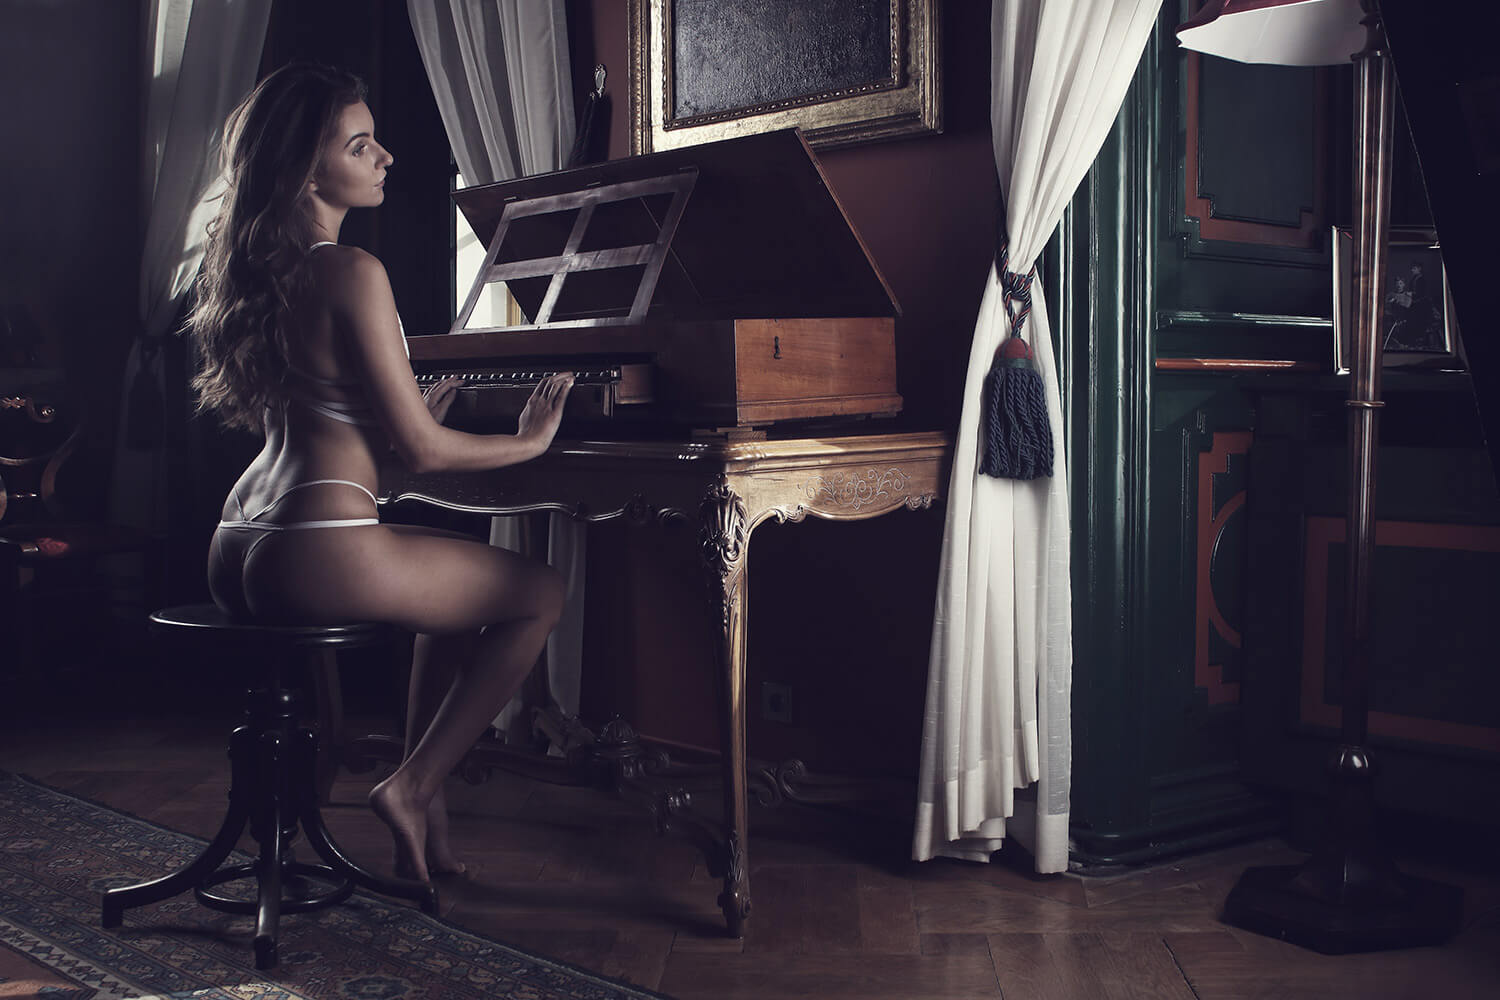 boudoir photo of a woman in lingerie playing the piano in the castle interior